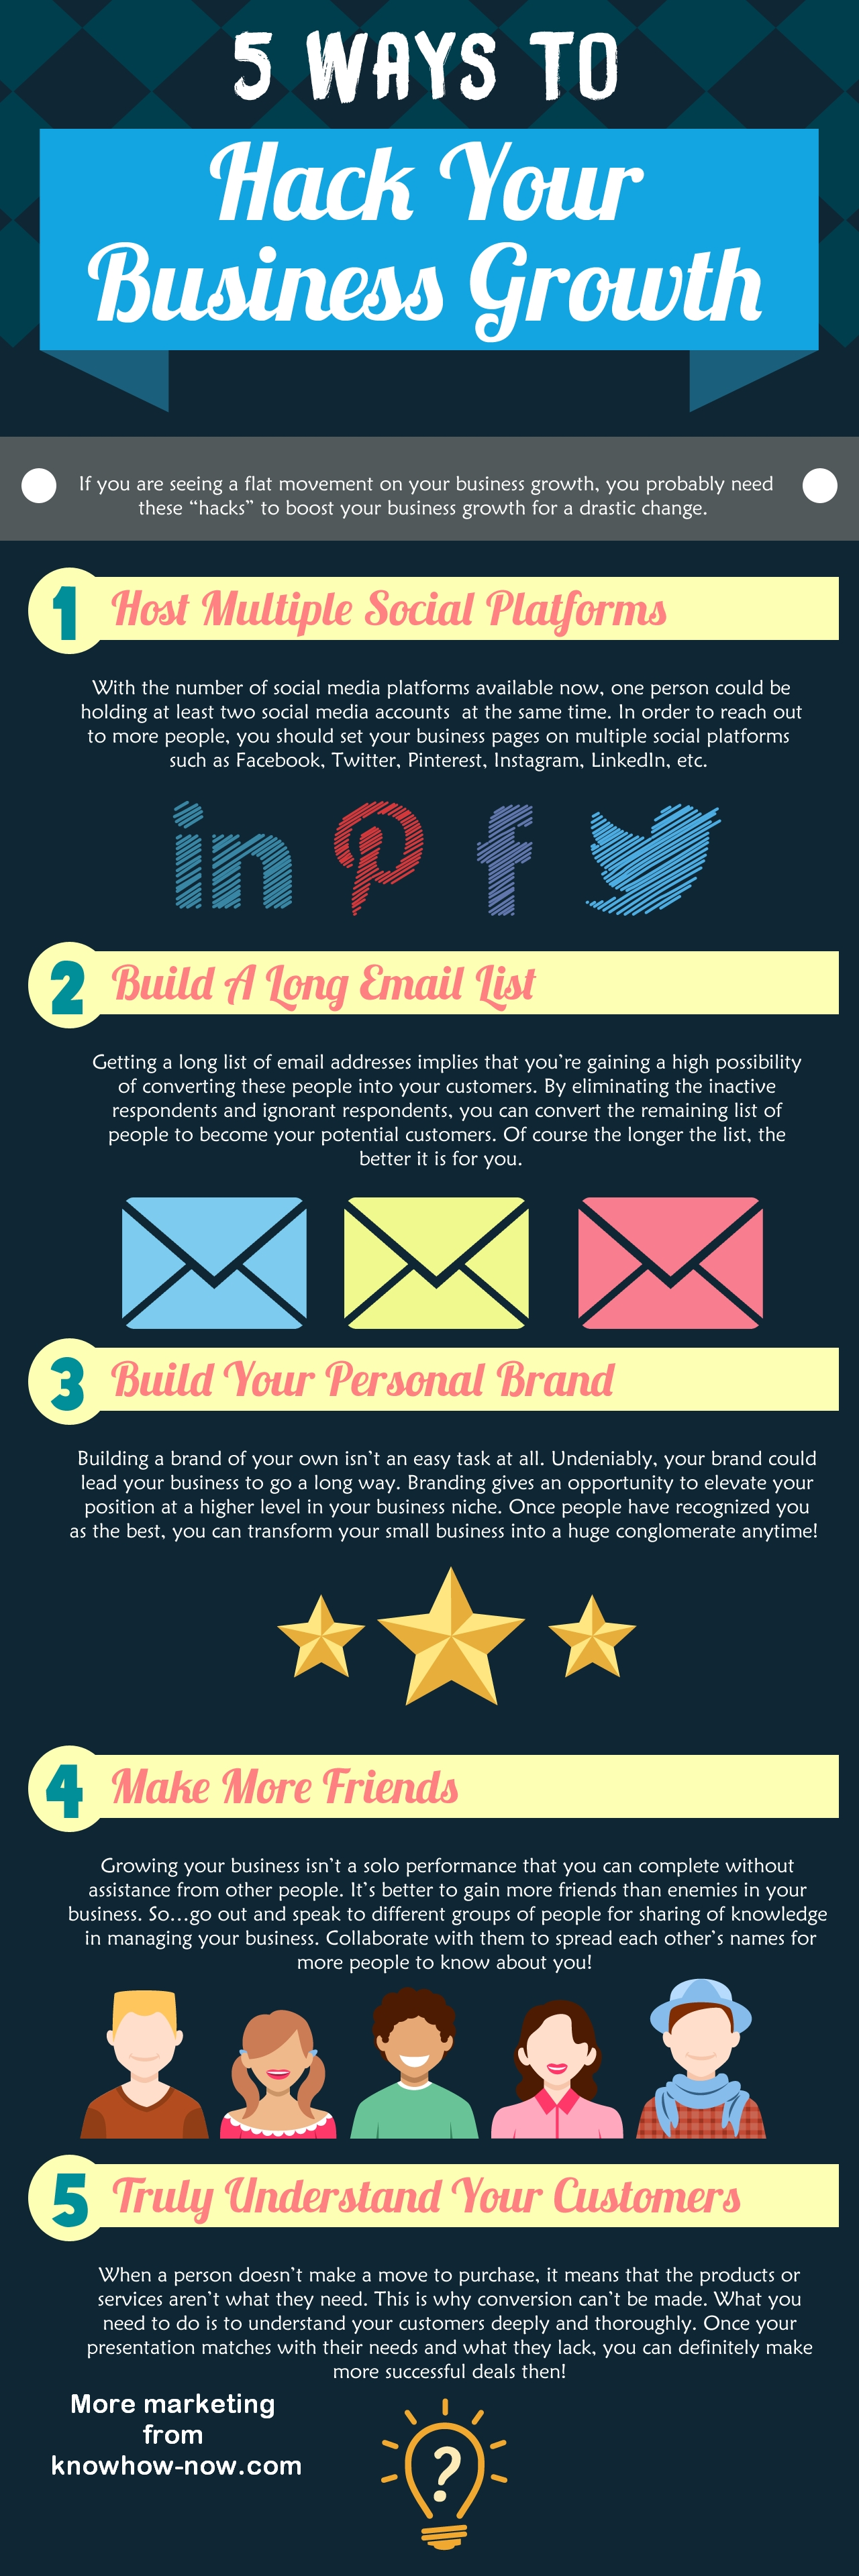 five ways to hack your business growth - infographic